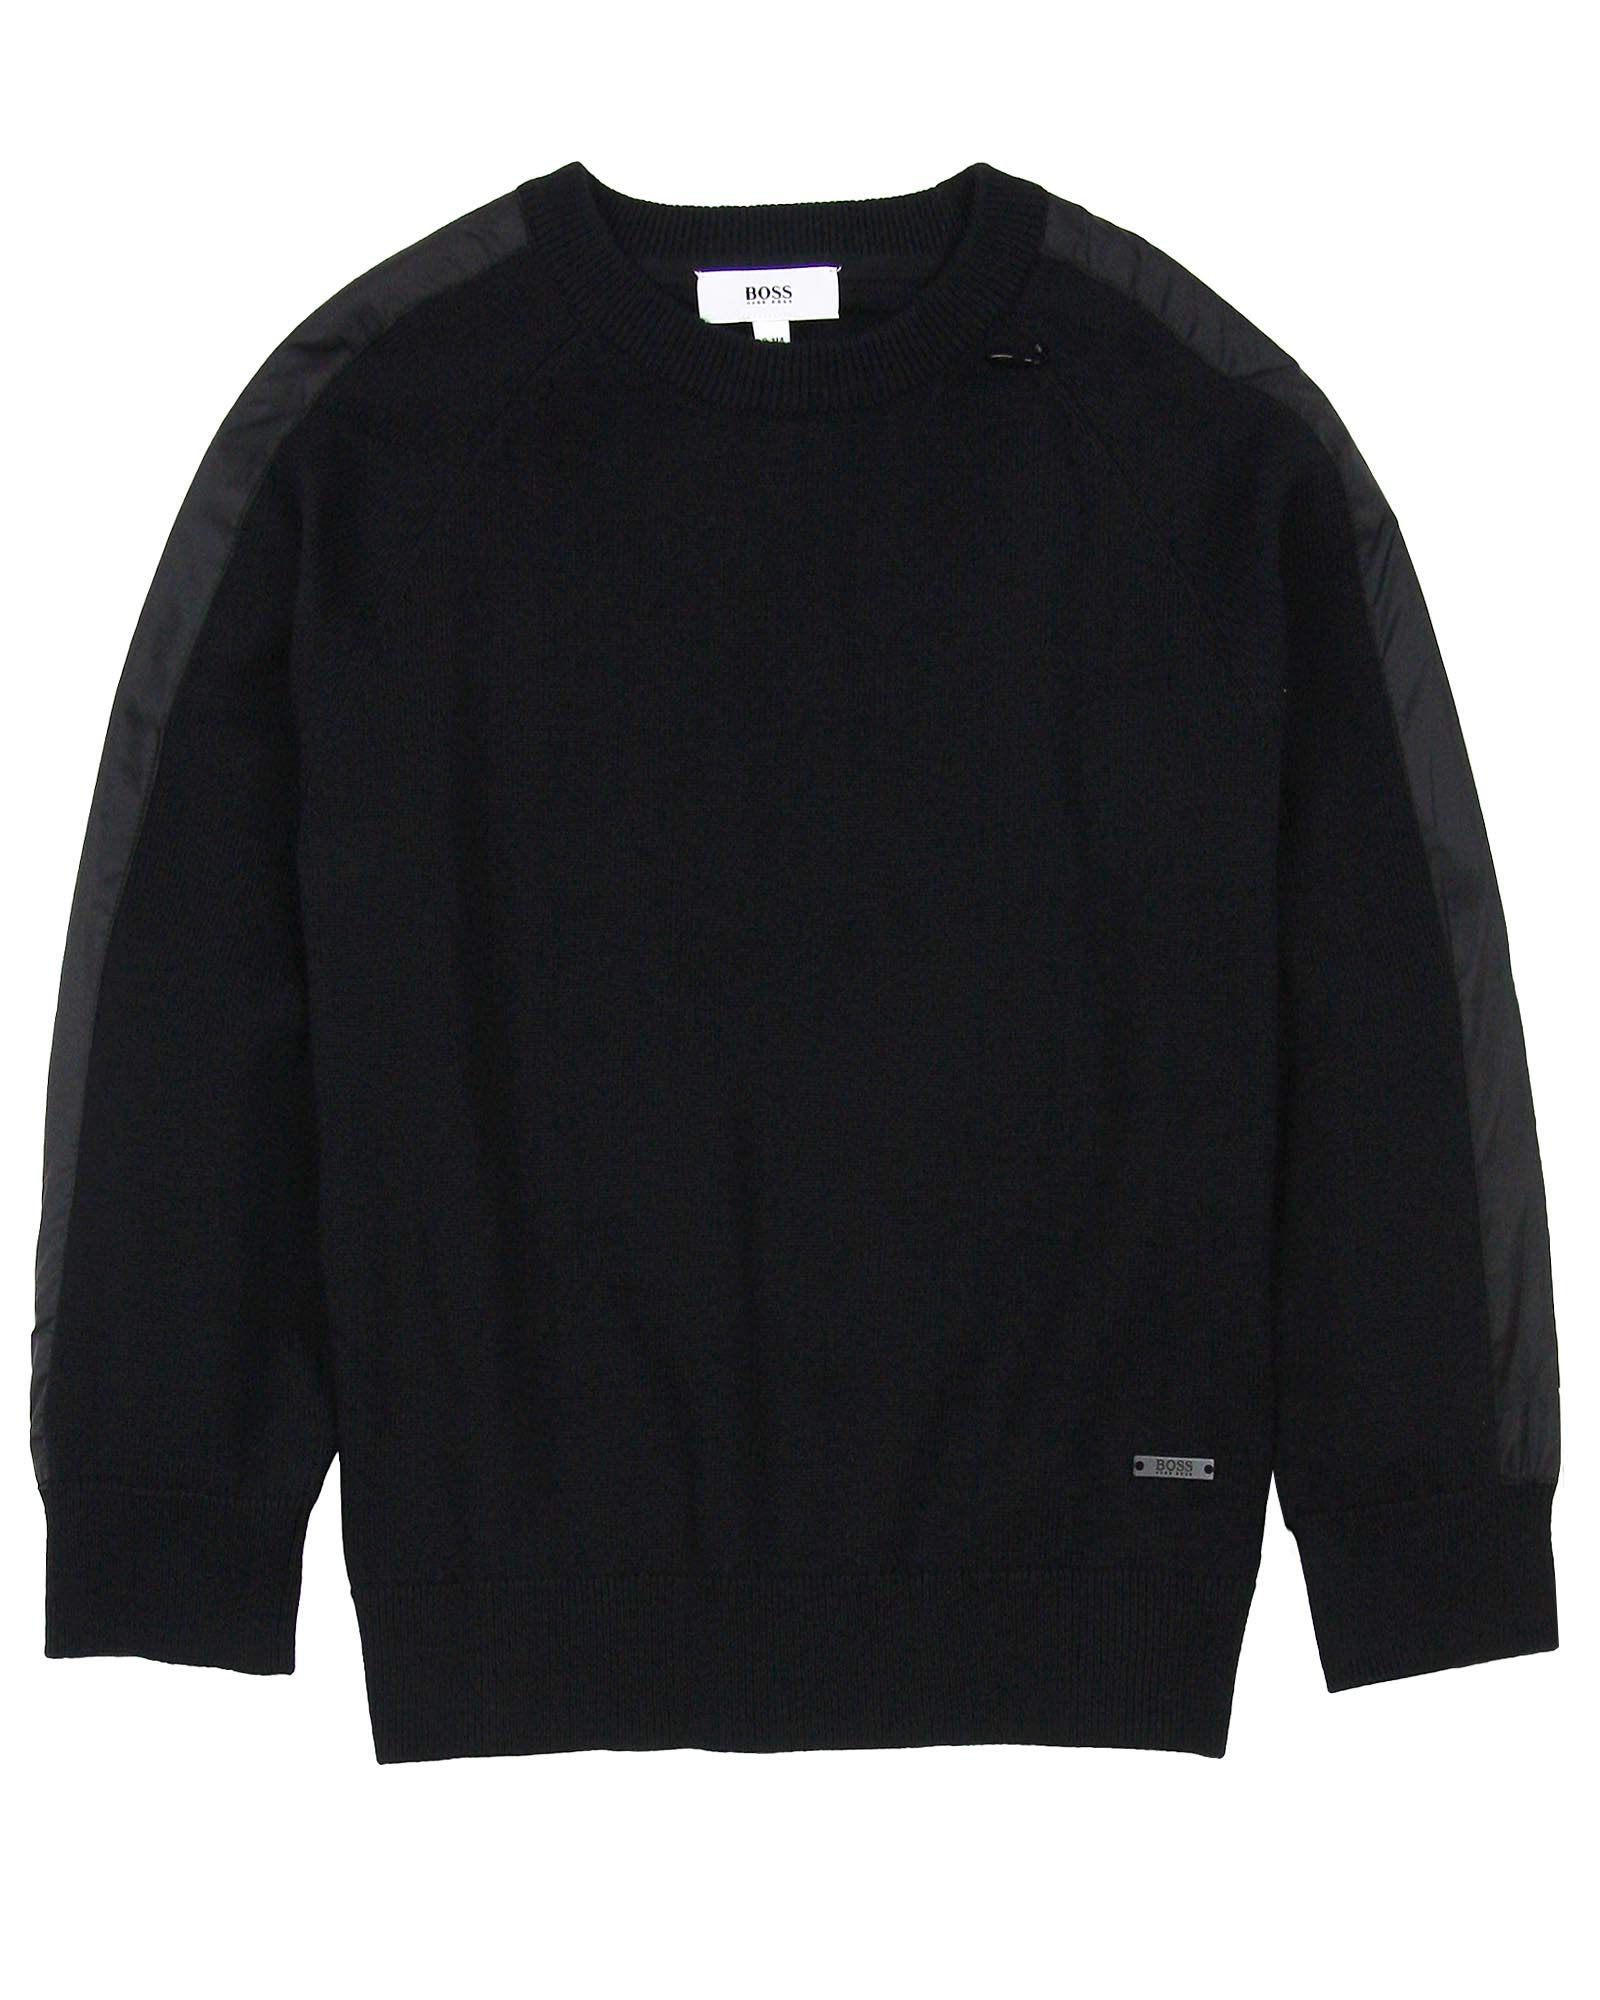 BOSS Boys Pullover with Side Stripes, Sizes 6-16 - 10 Black